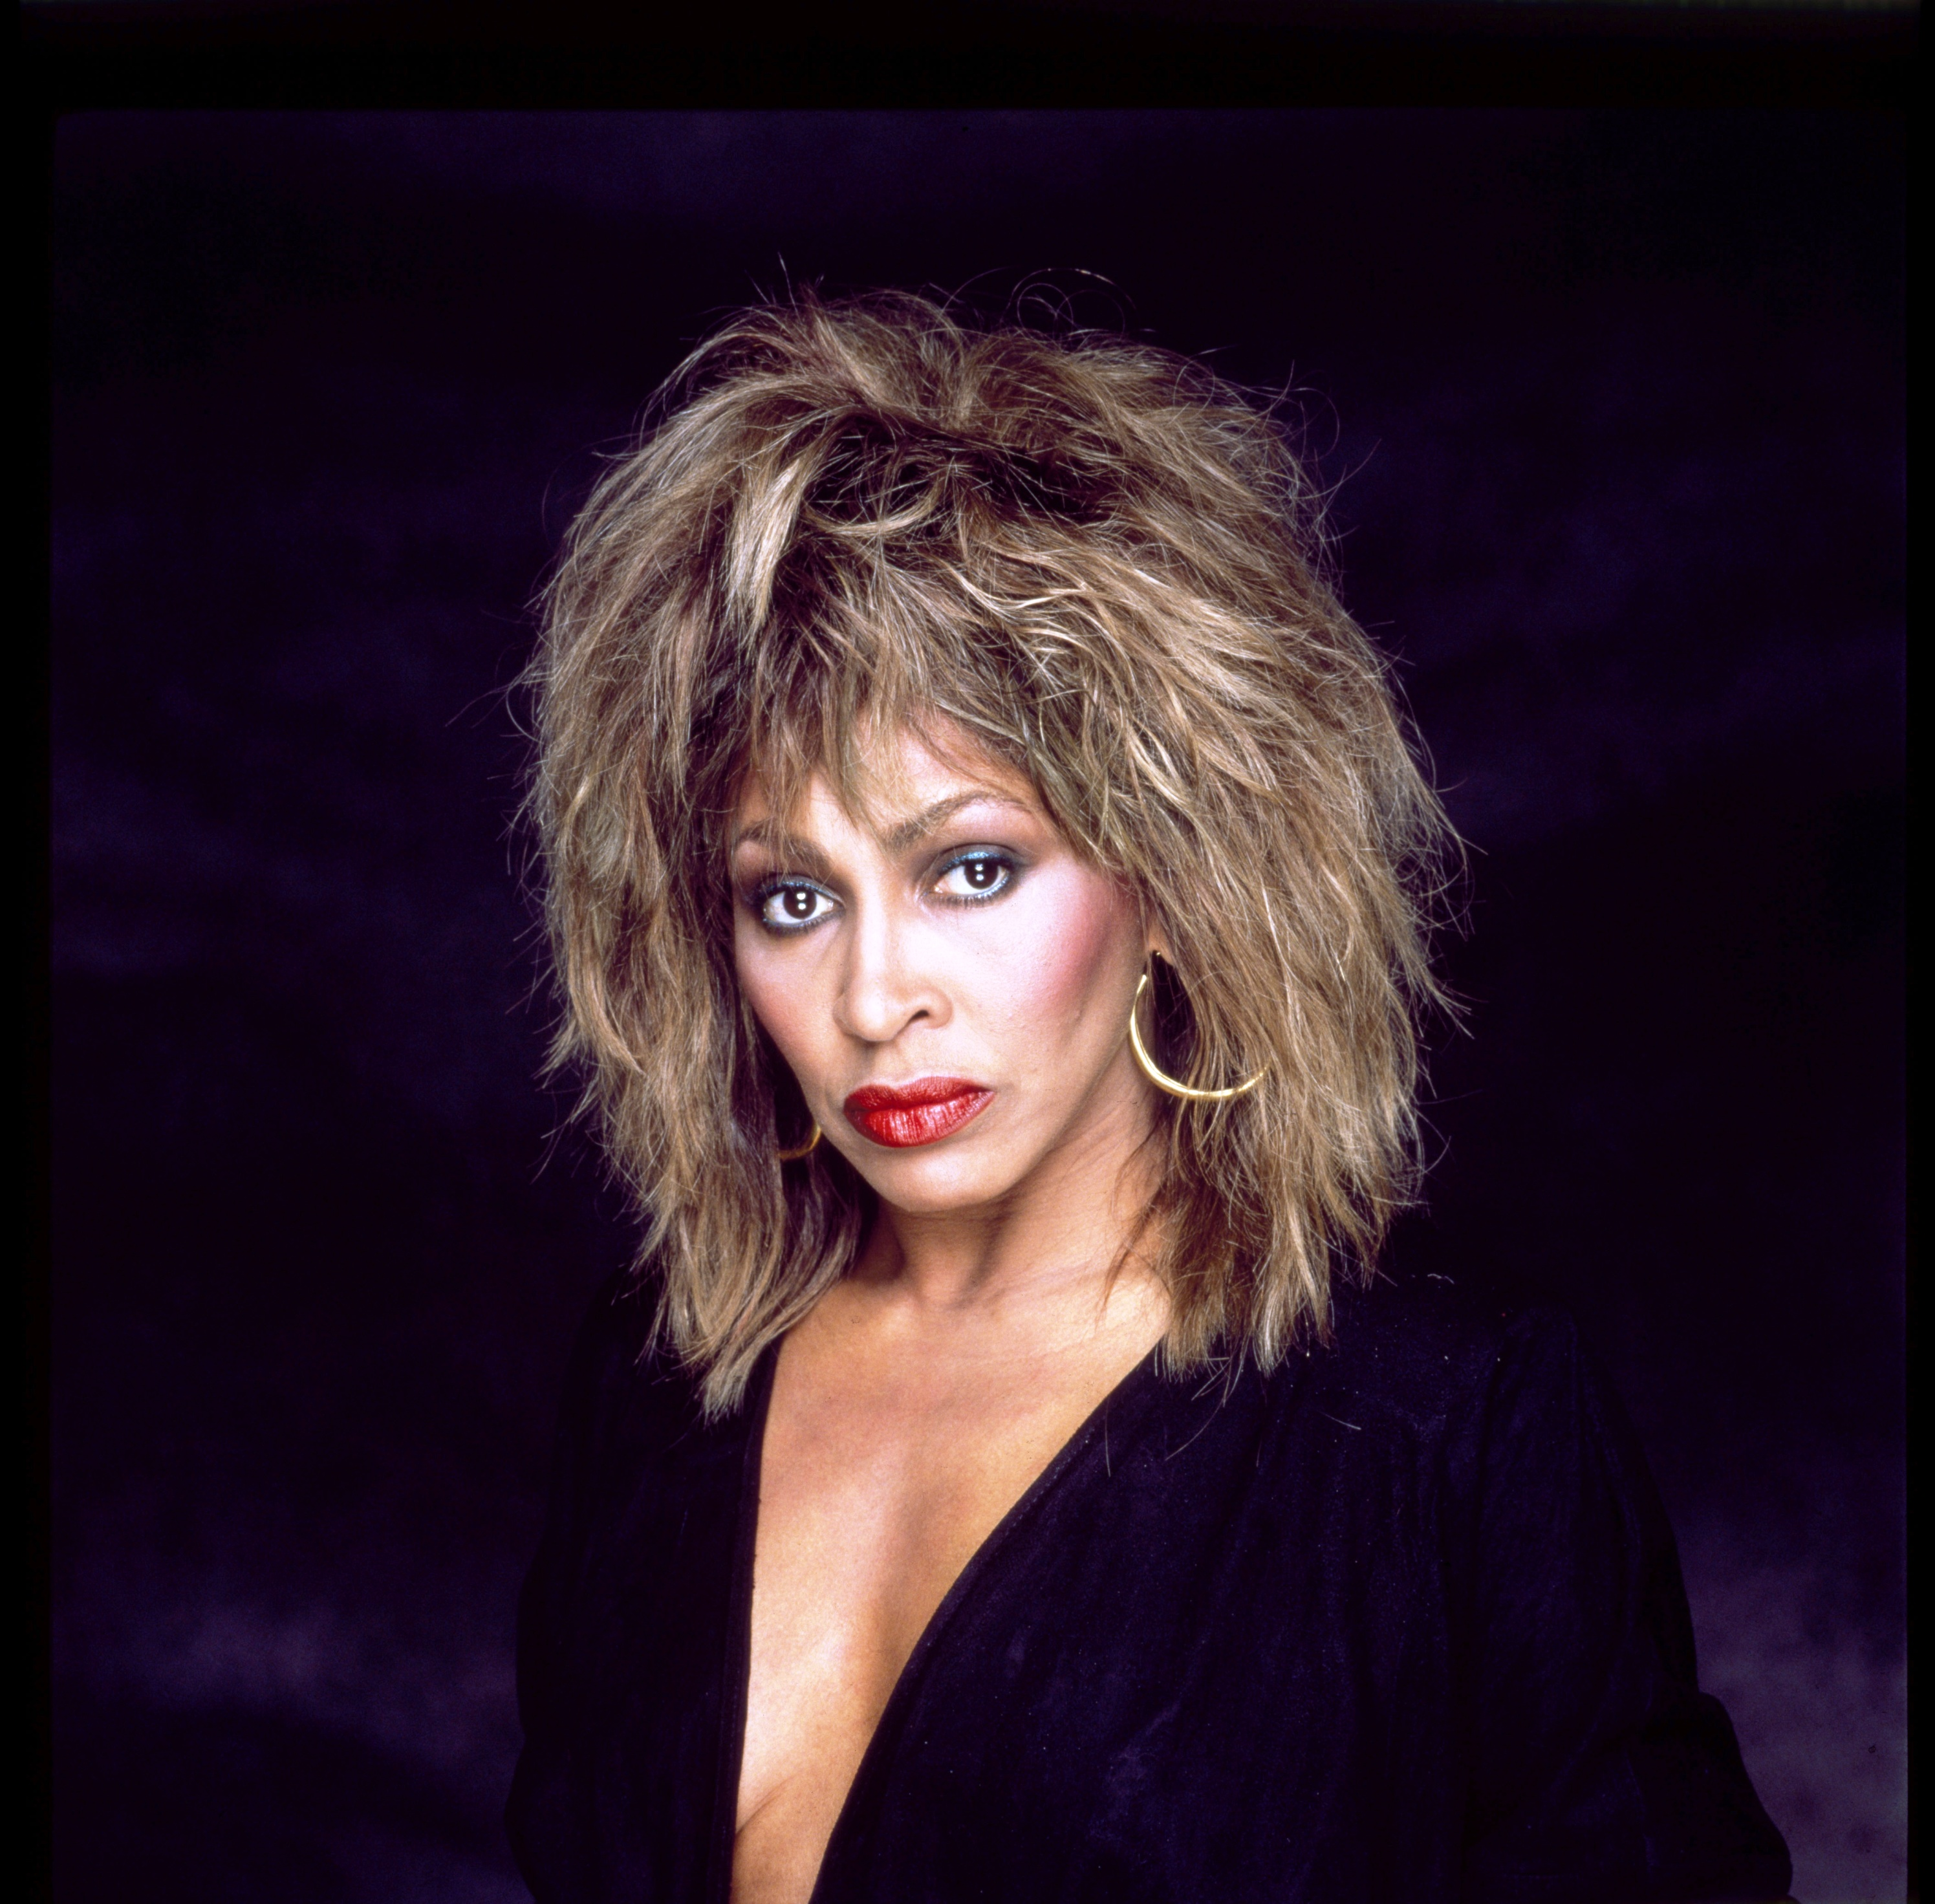 Tina Turner photo #236515